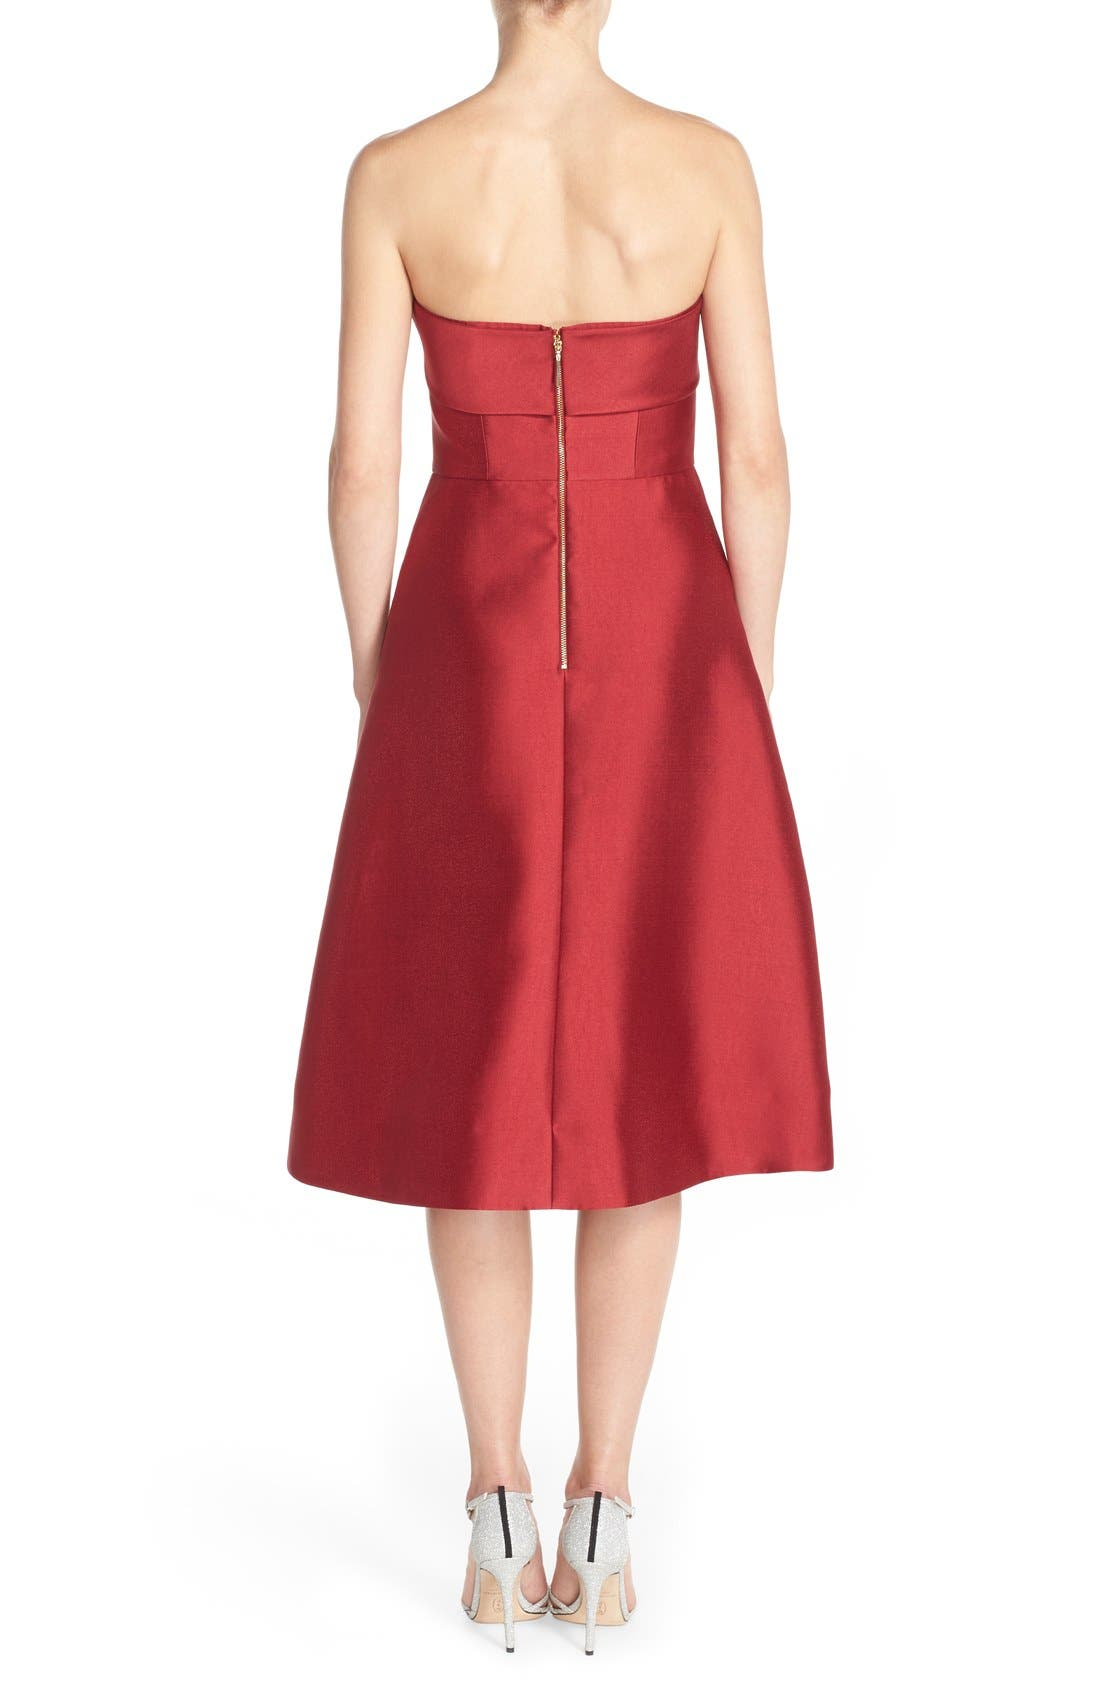 Alternate Image 2  - ERIN erin fetherston 'Katie' Bow Neck Twill Fit & Flare Dress